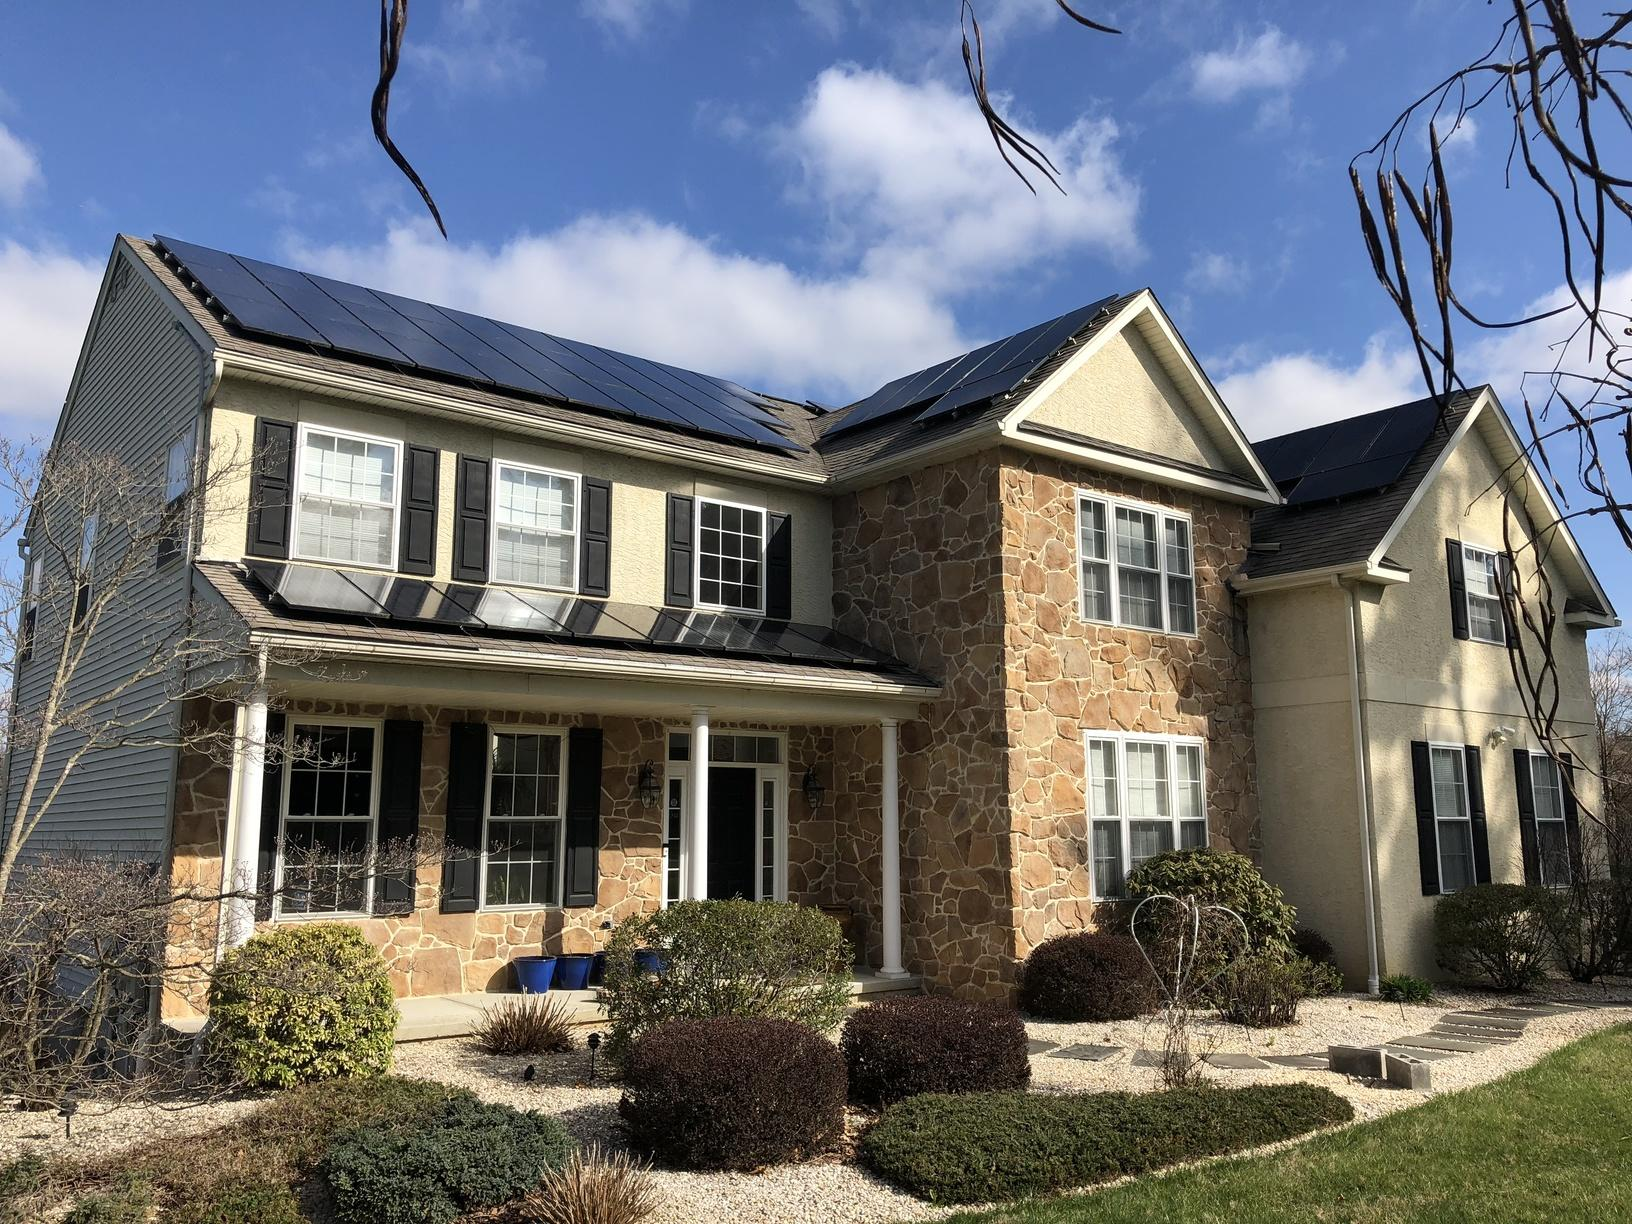 Replacing Asphalt Shingle Roof and Removing Solar Panels